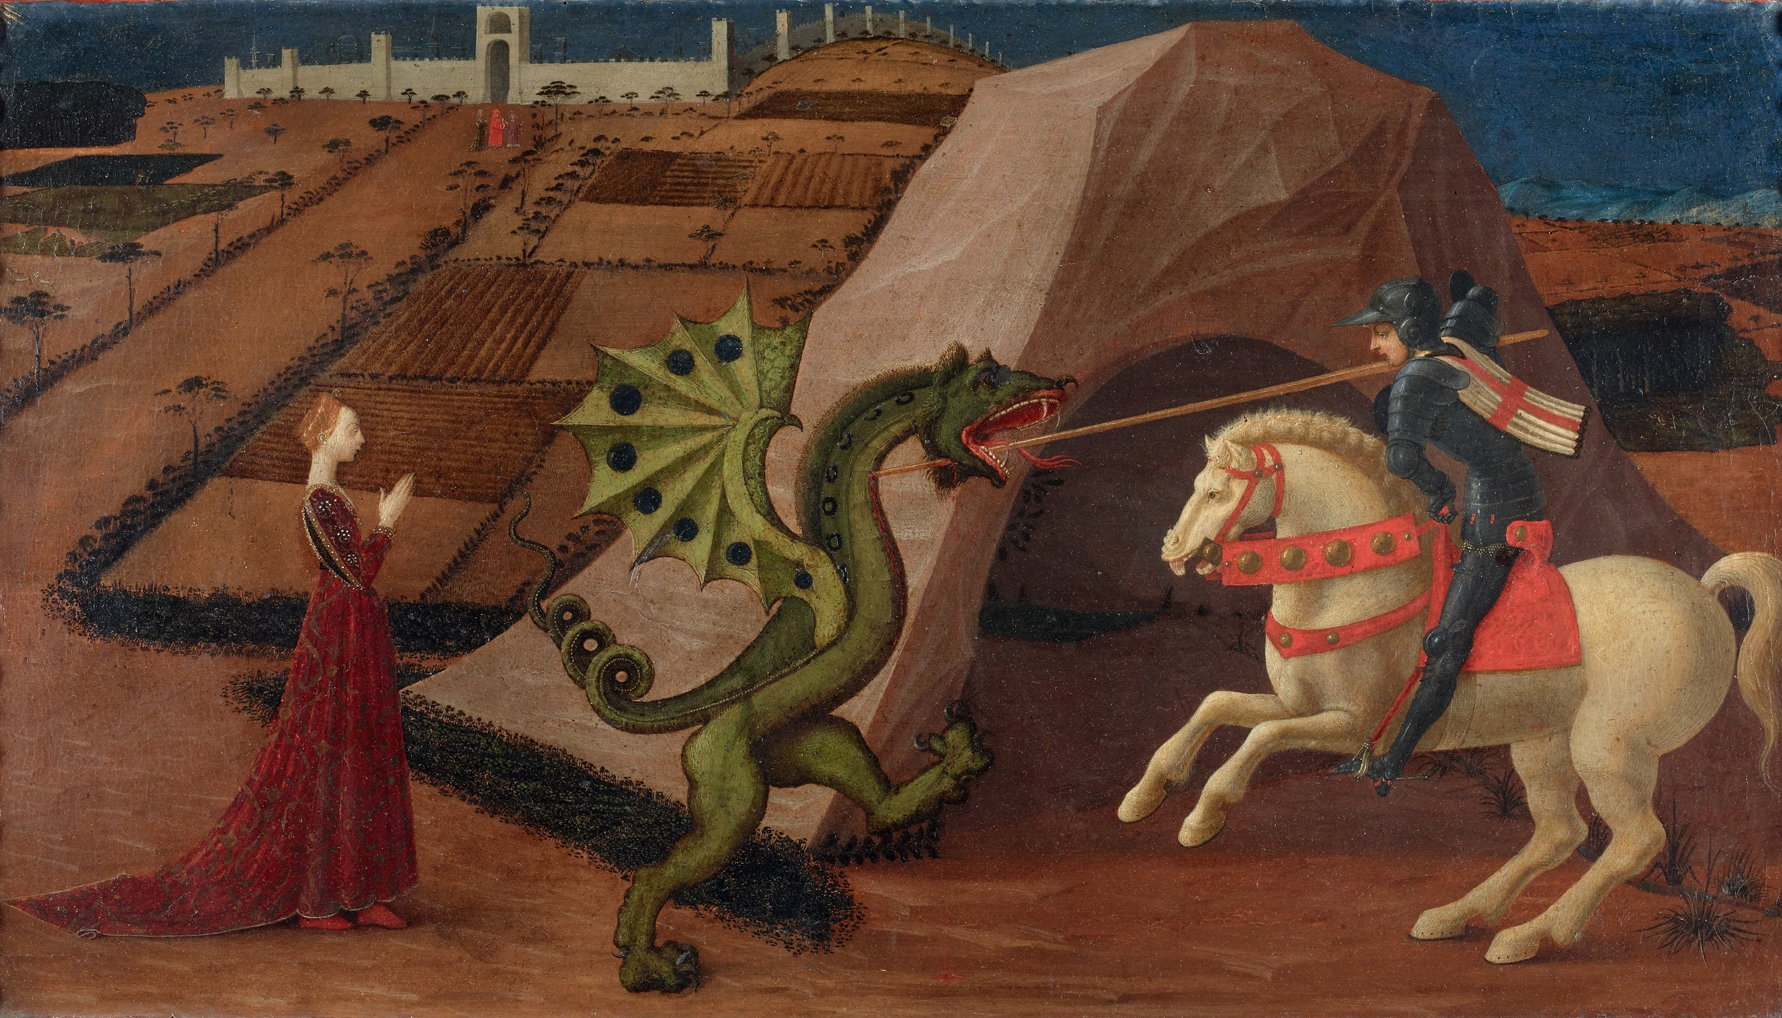 St. George and the Dragon, cr. 1430-35, Paolo Uccello, Florence, Italy